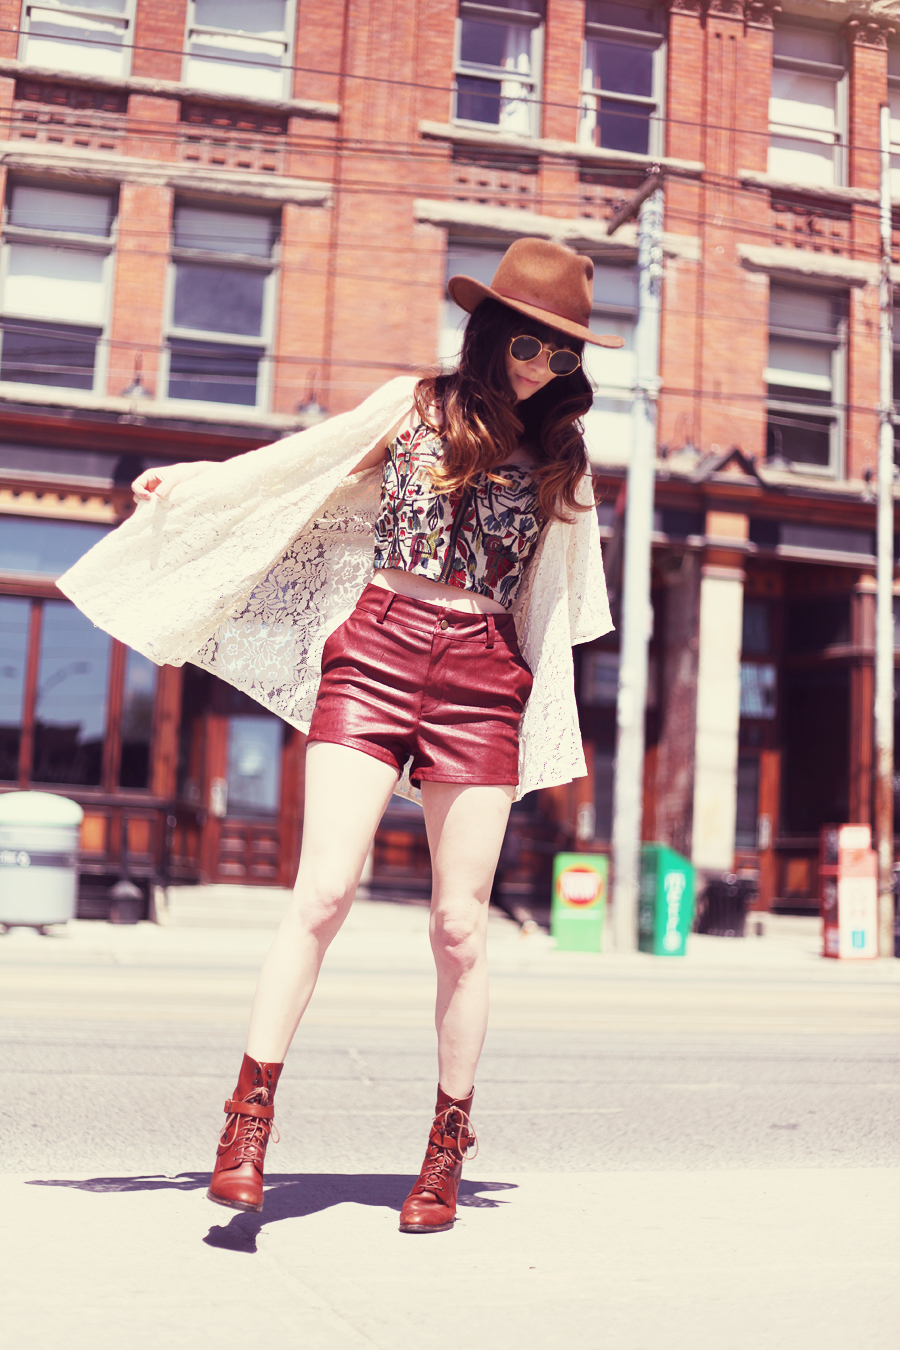 Rachel marie in Jag Lever style fashion blogger shoots a look in Toronto Canada for Volcom